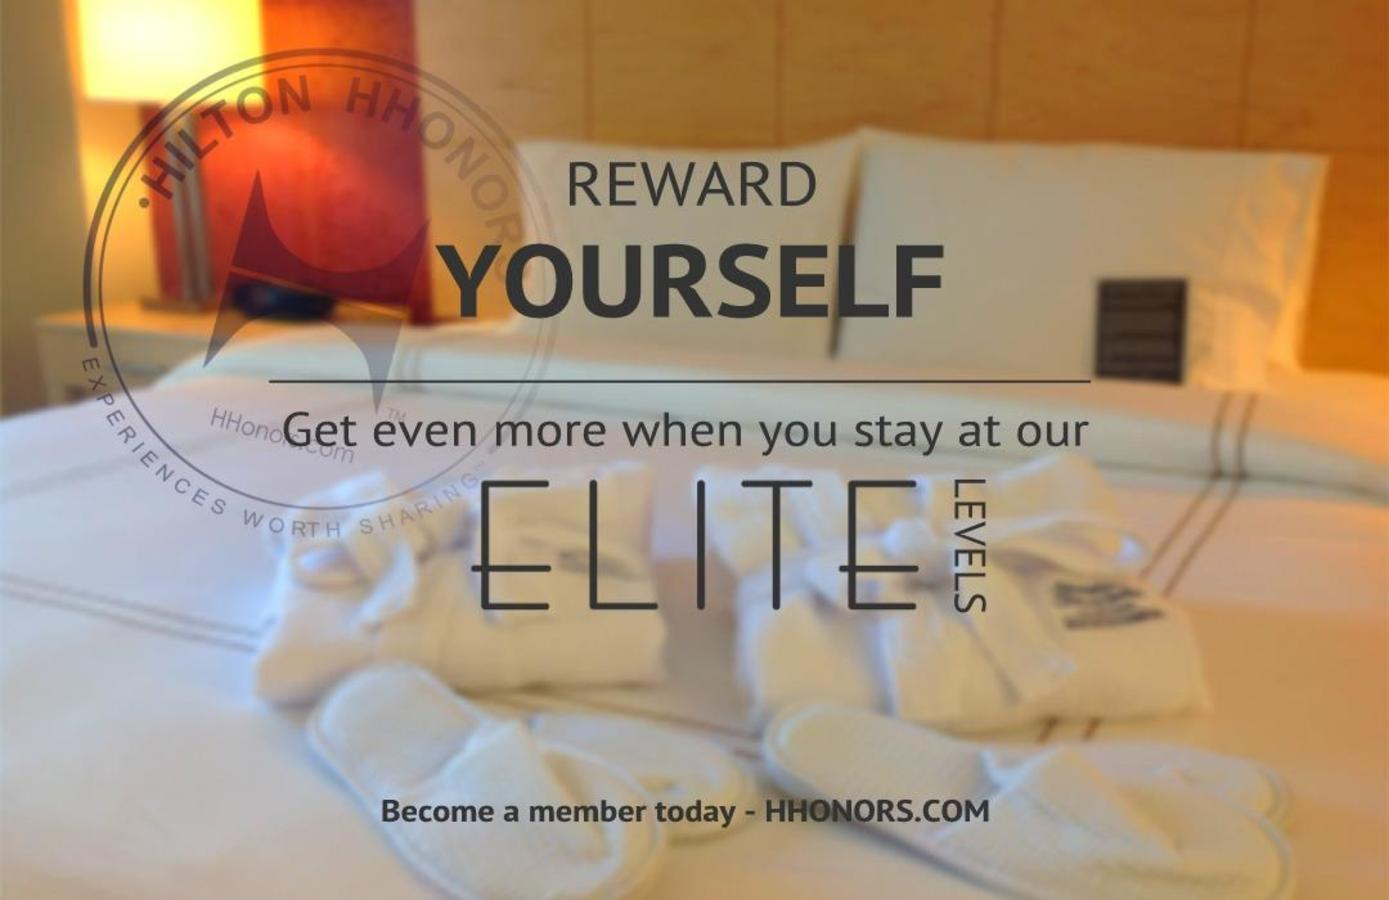 Reward Yourself by becoming Hilton Honors